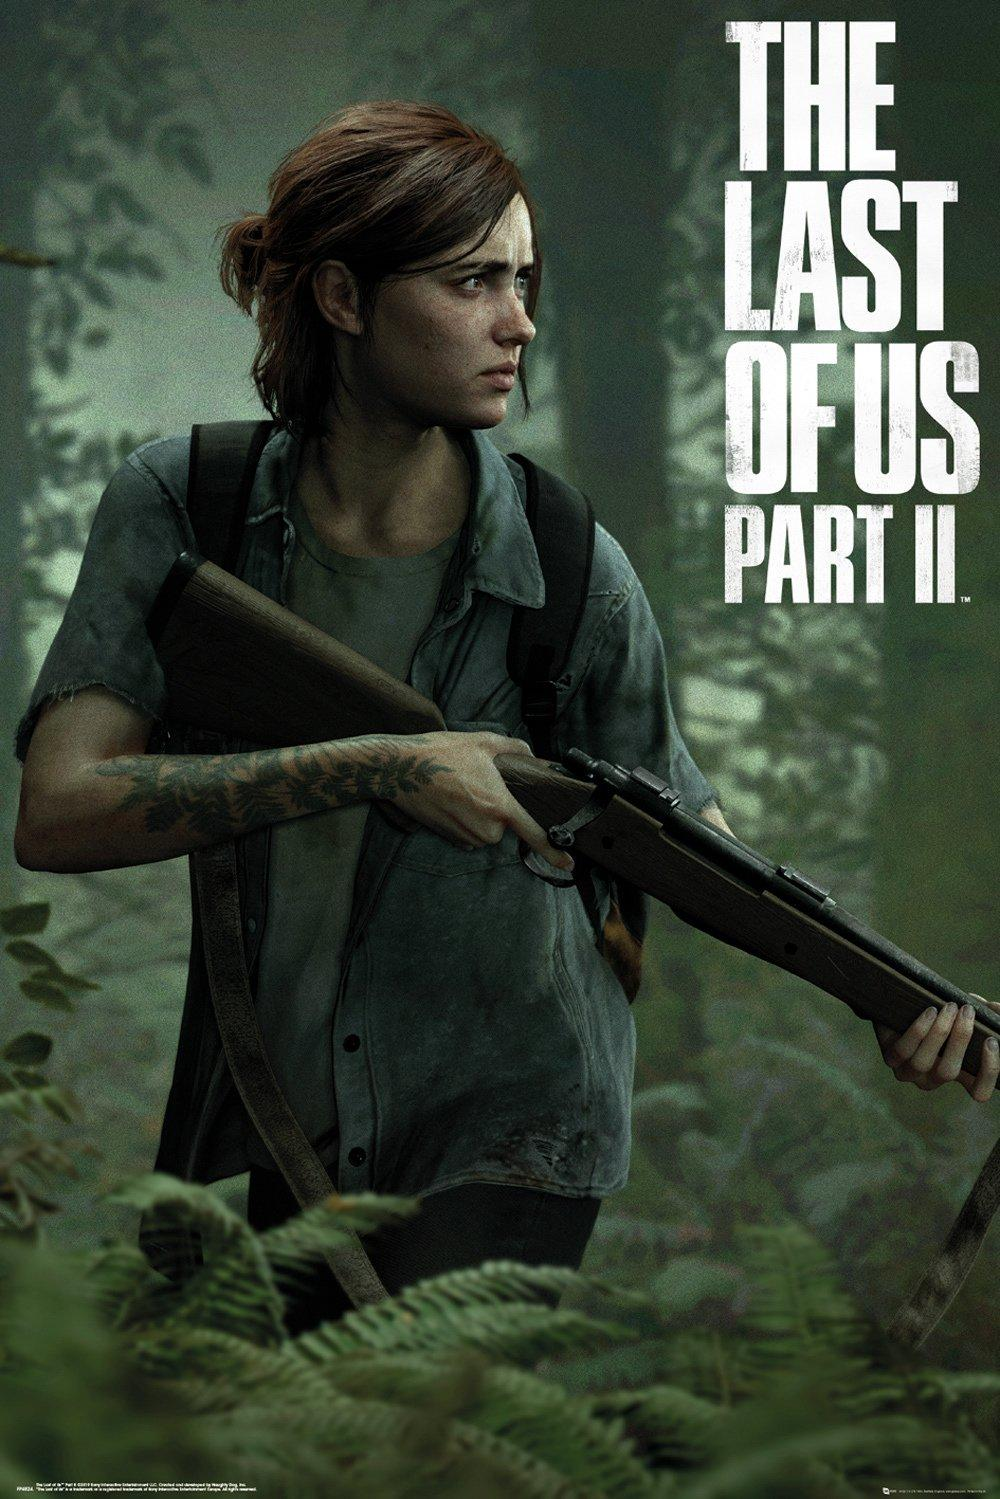 THE LAST OF US - Poster 61X91 - Part 2 - Ellie